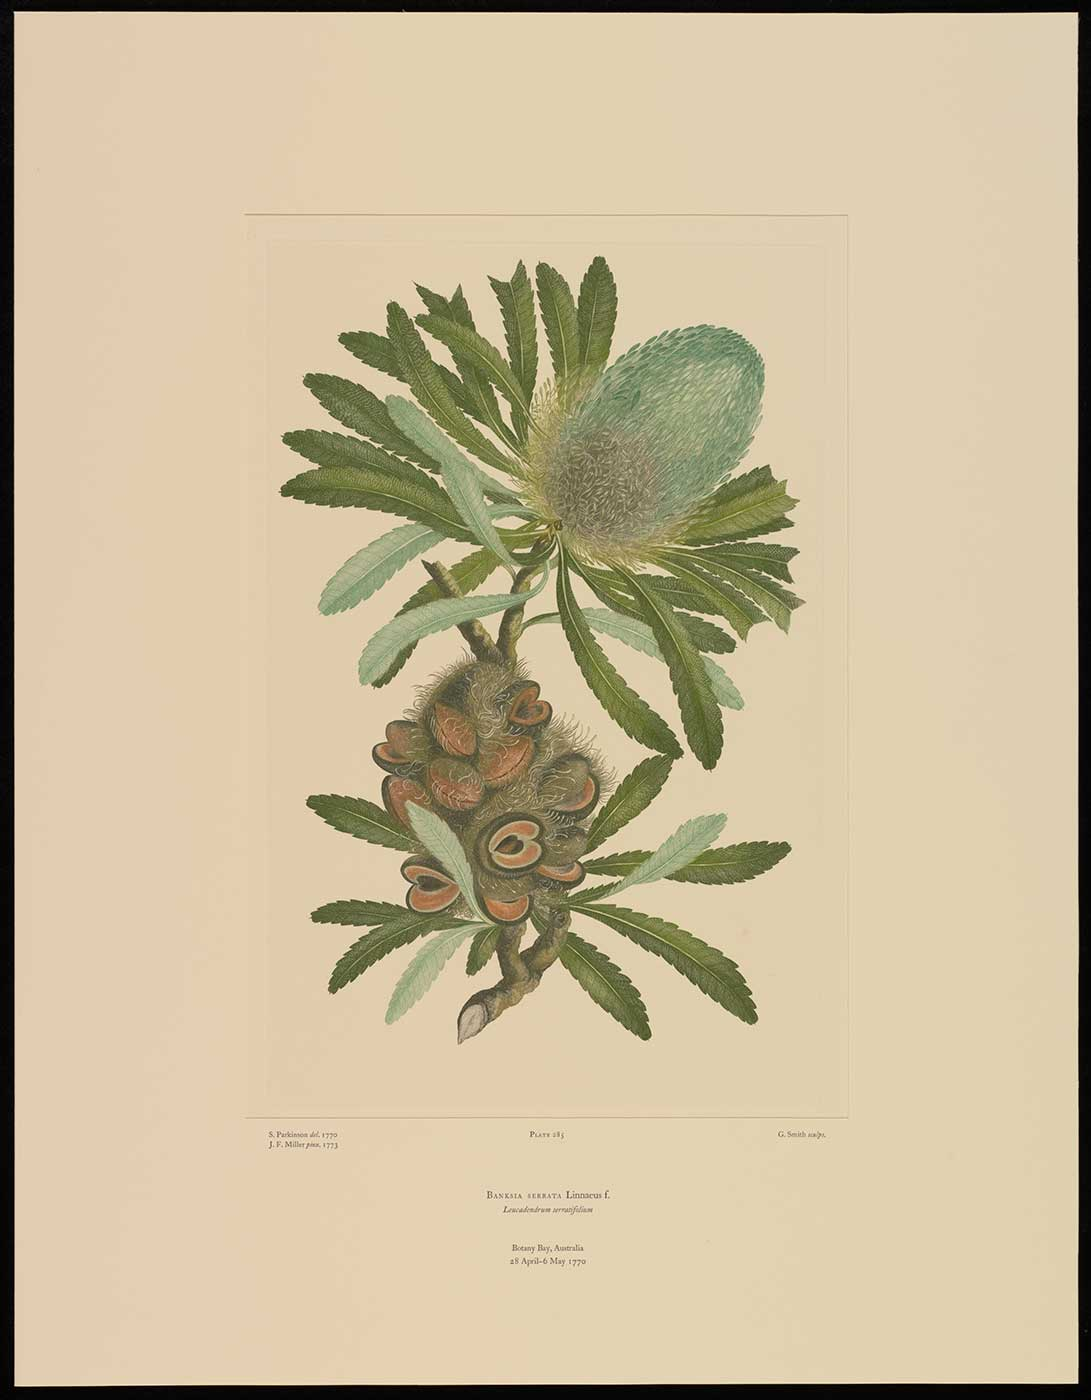 Colour illustration of a plant  with serrated leaves, cylindrical flower head and seed pod. - click to view larger image